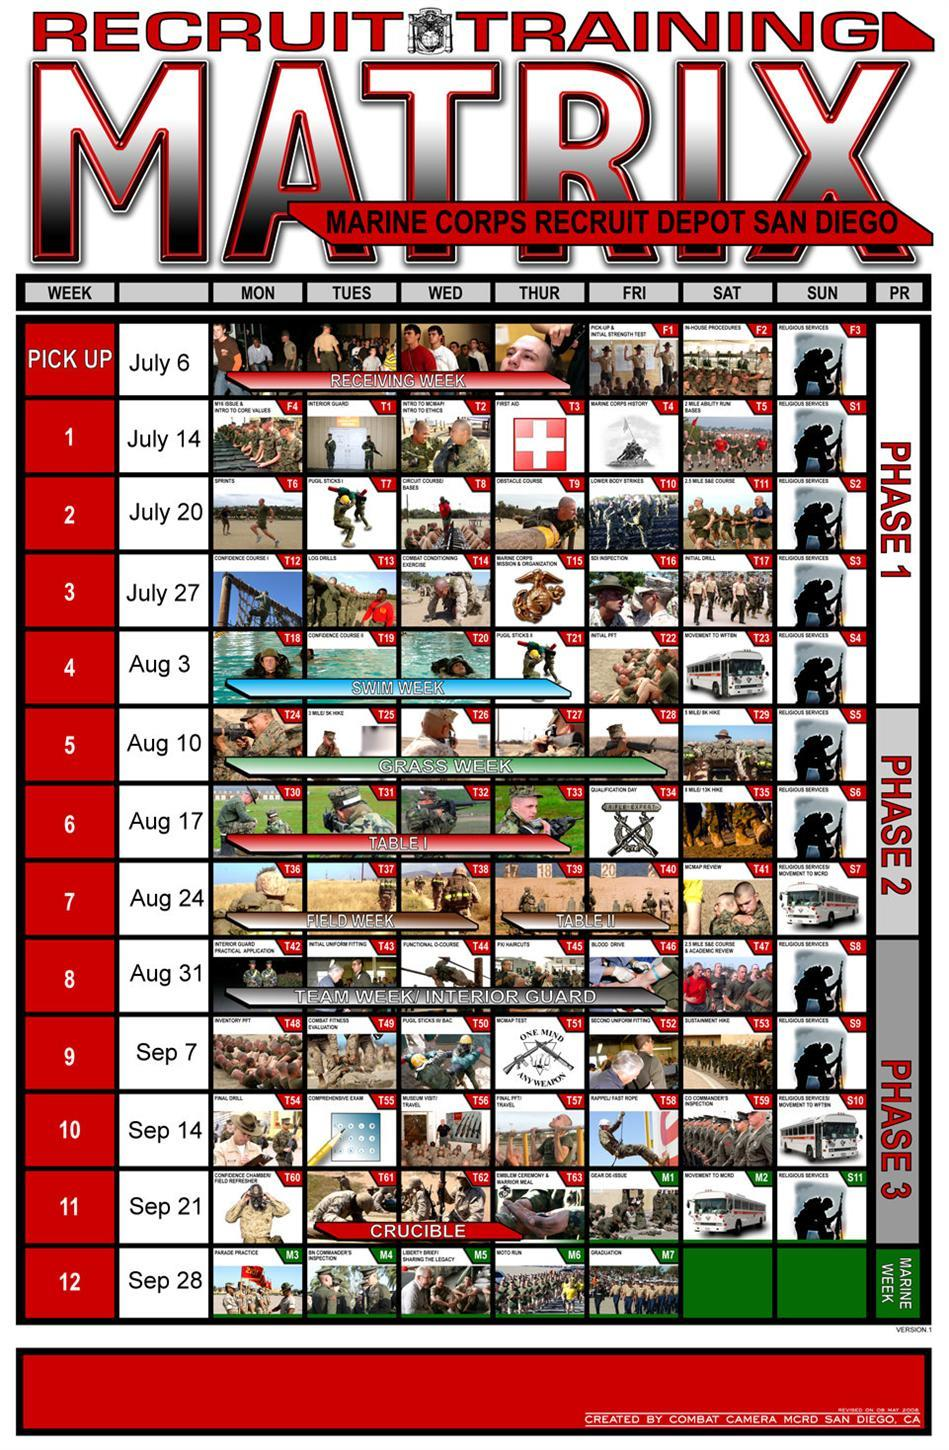 USMC Recruit Training Matrix